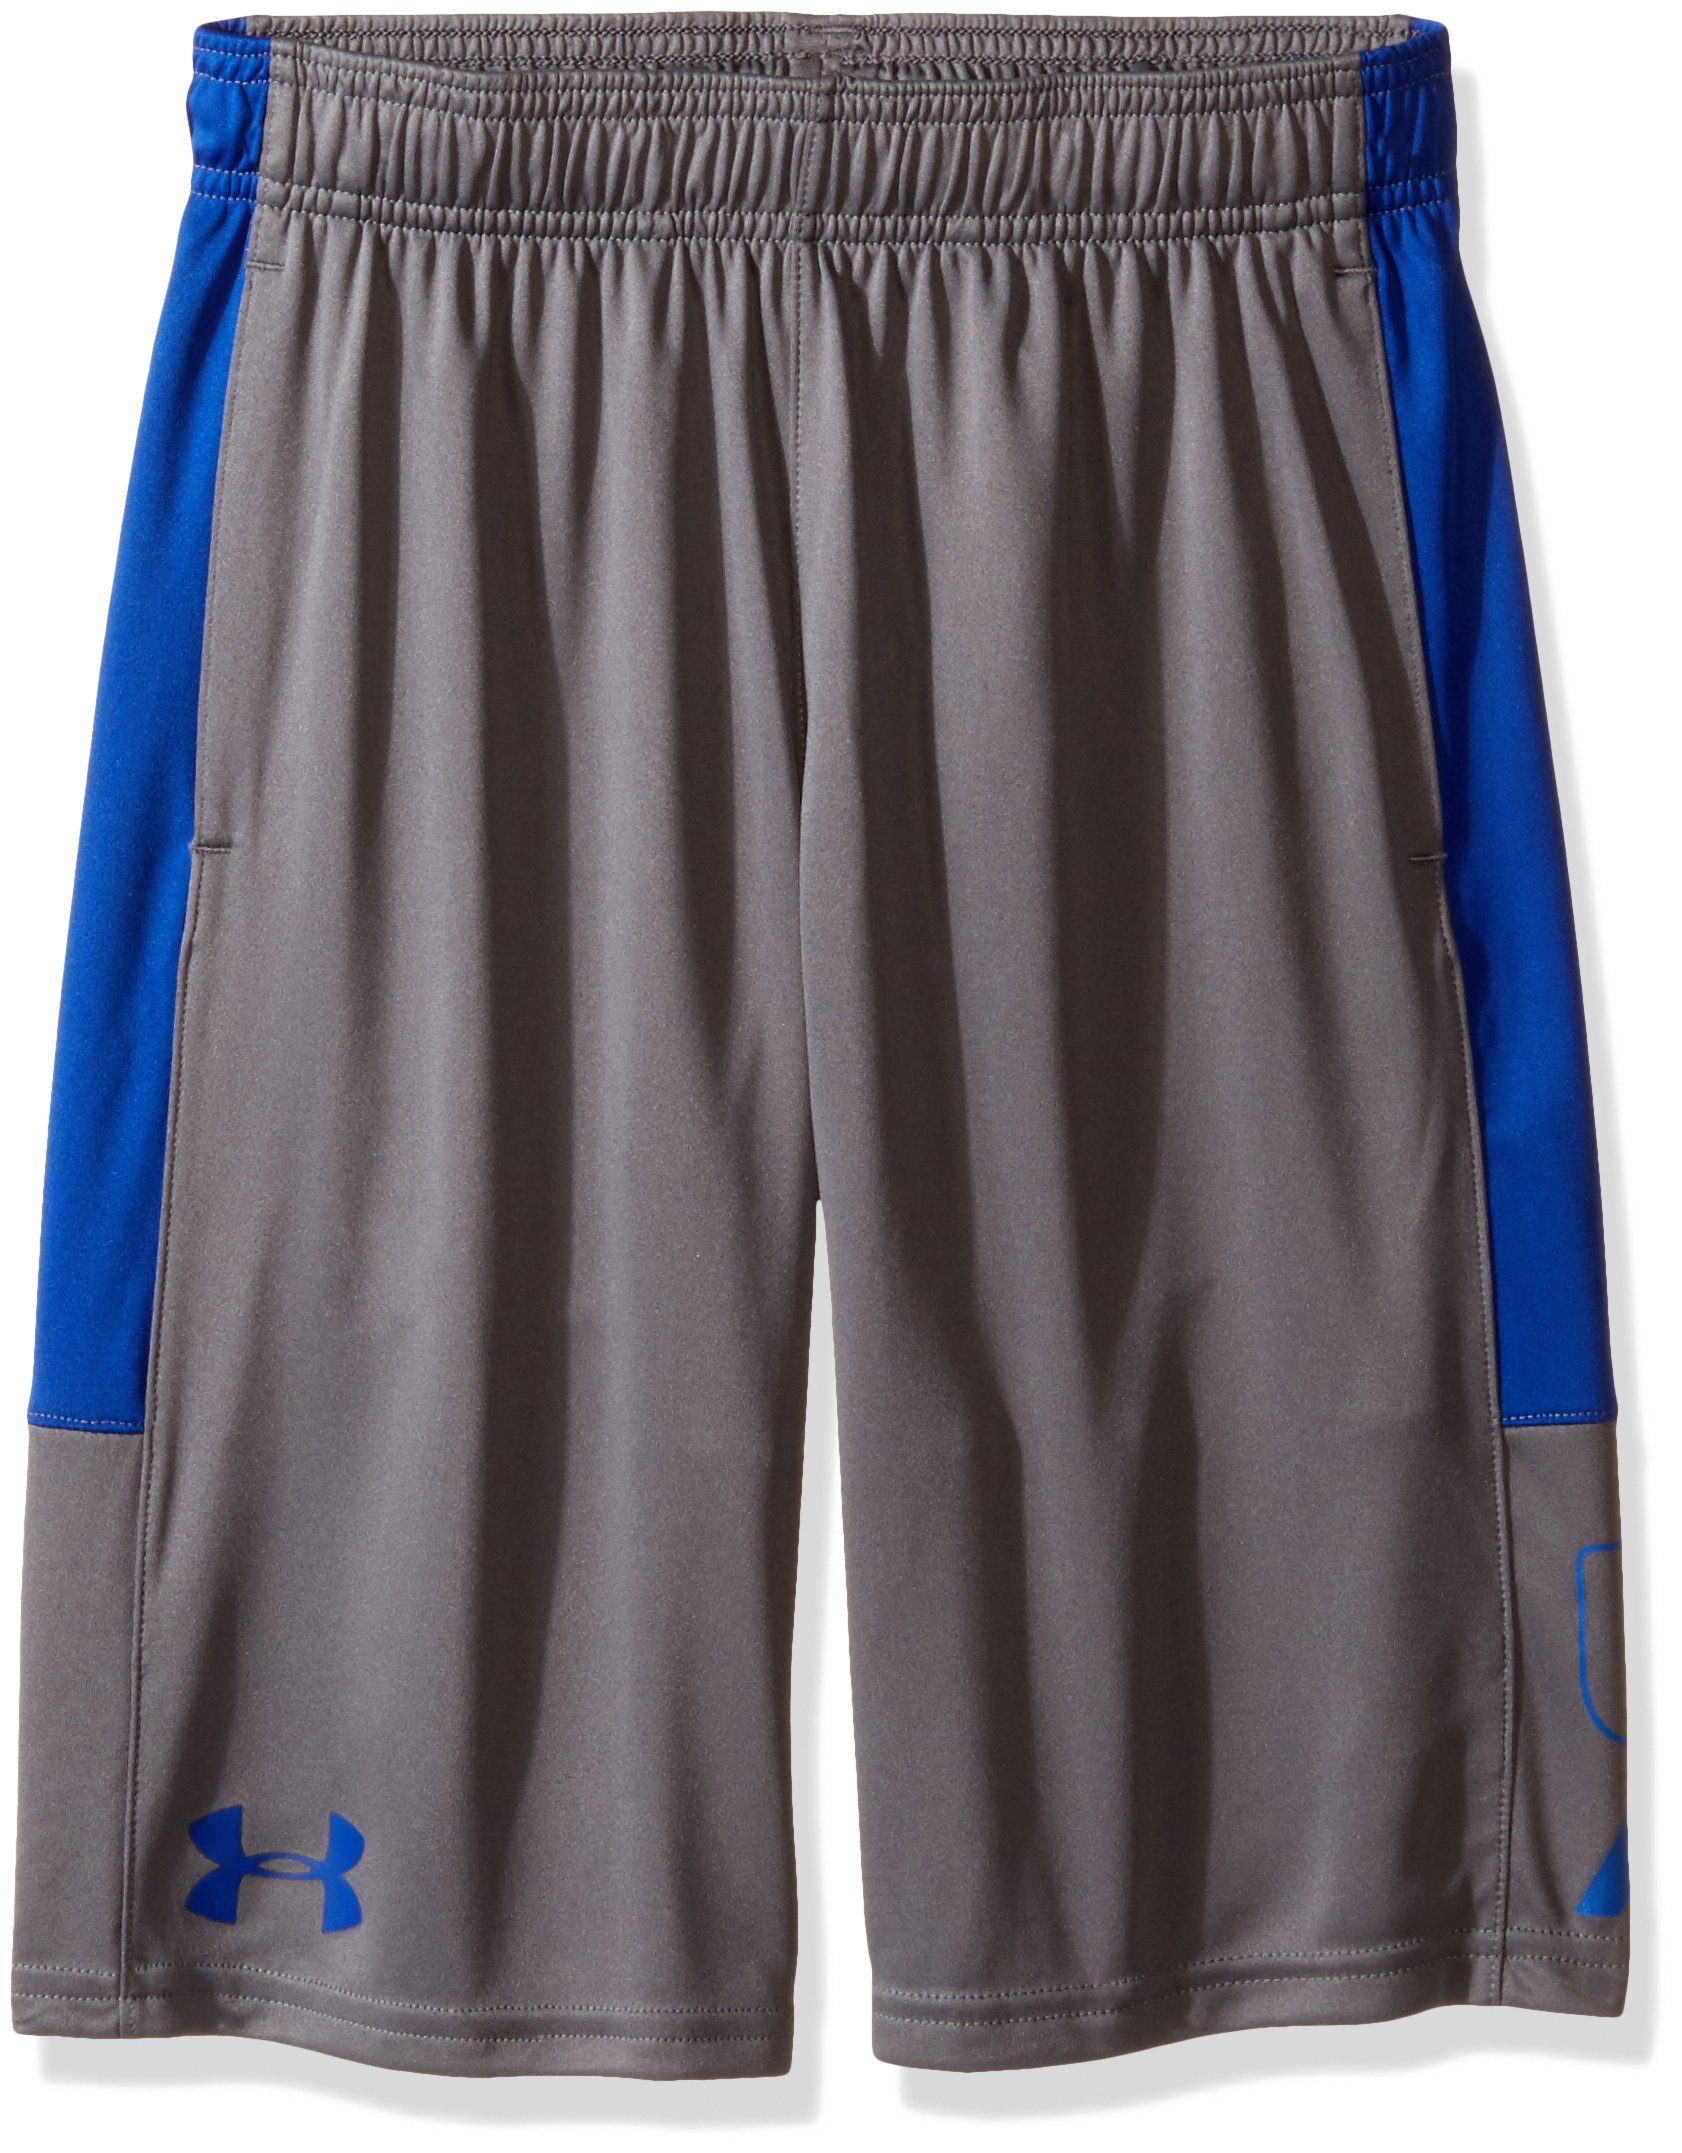 Under Armour Boys Instinct Shorts,Graphite /Royal Youth X-Small by Under Armour